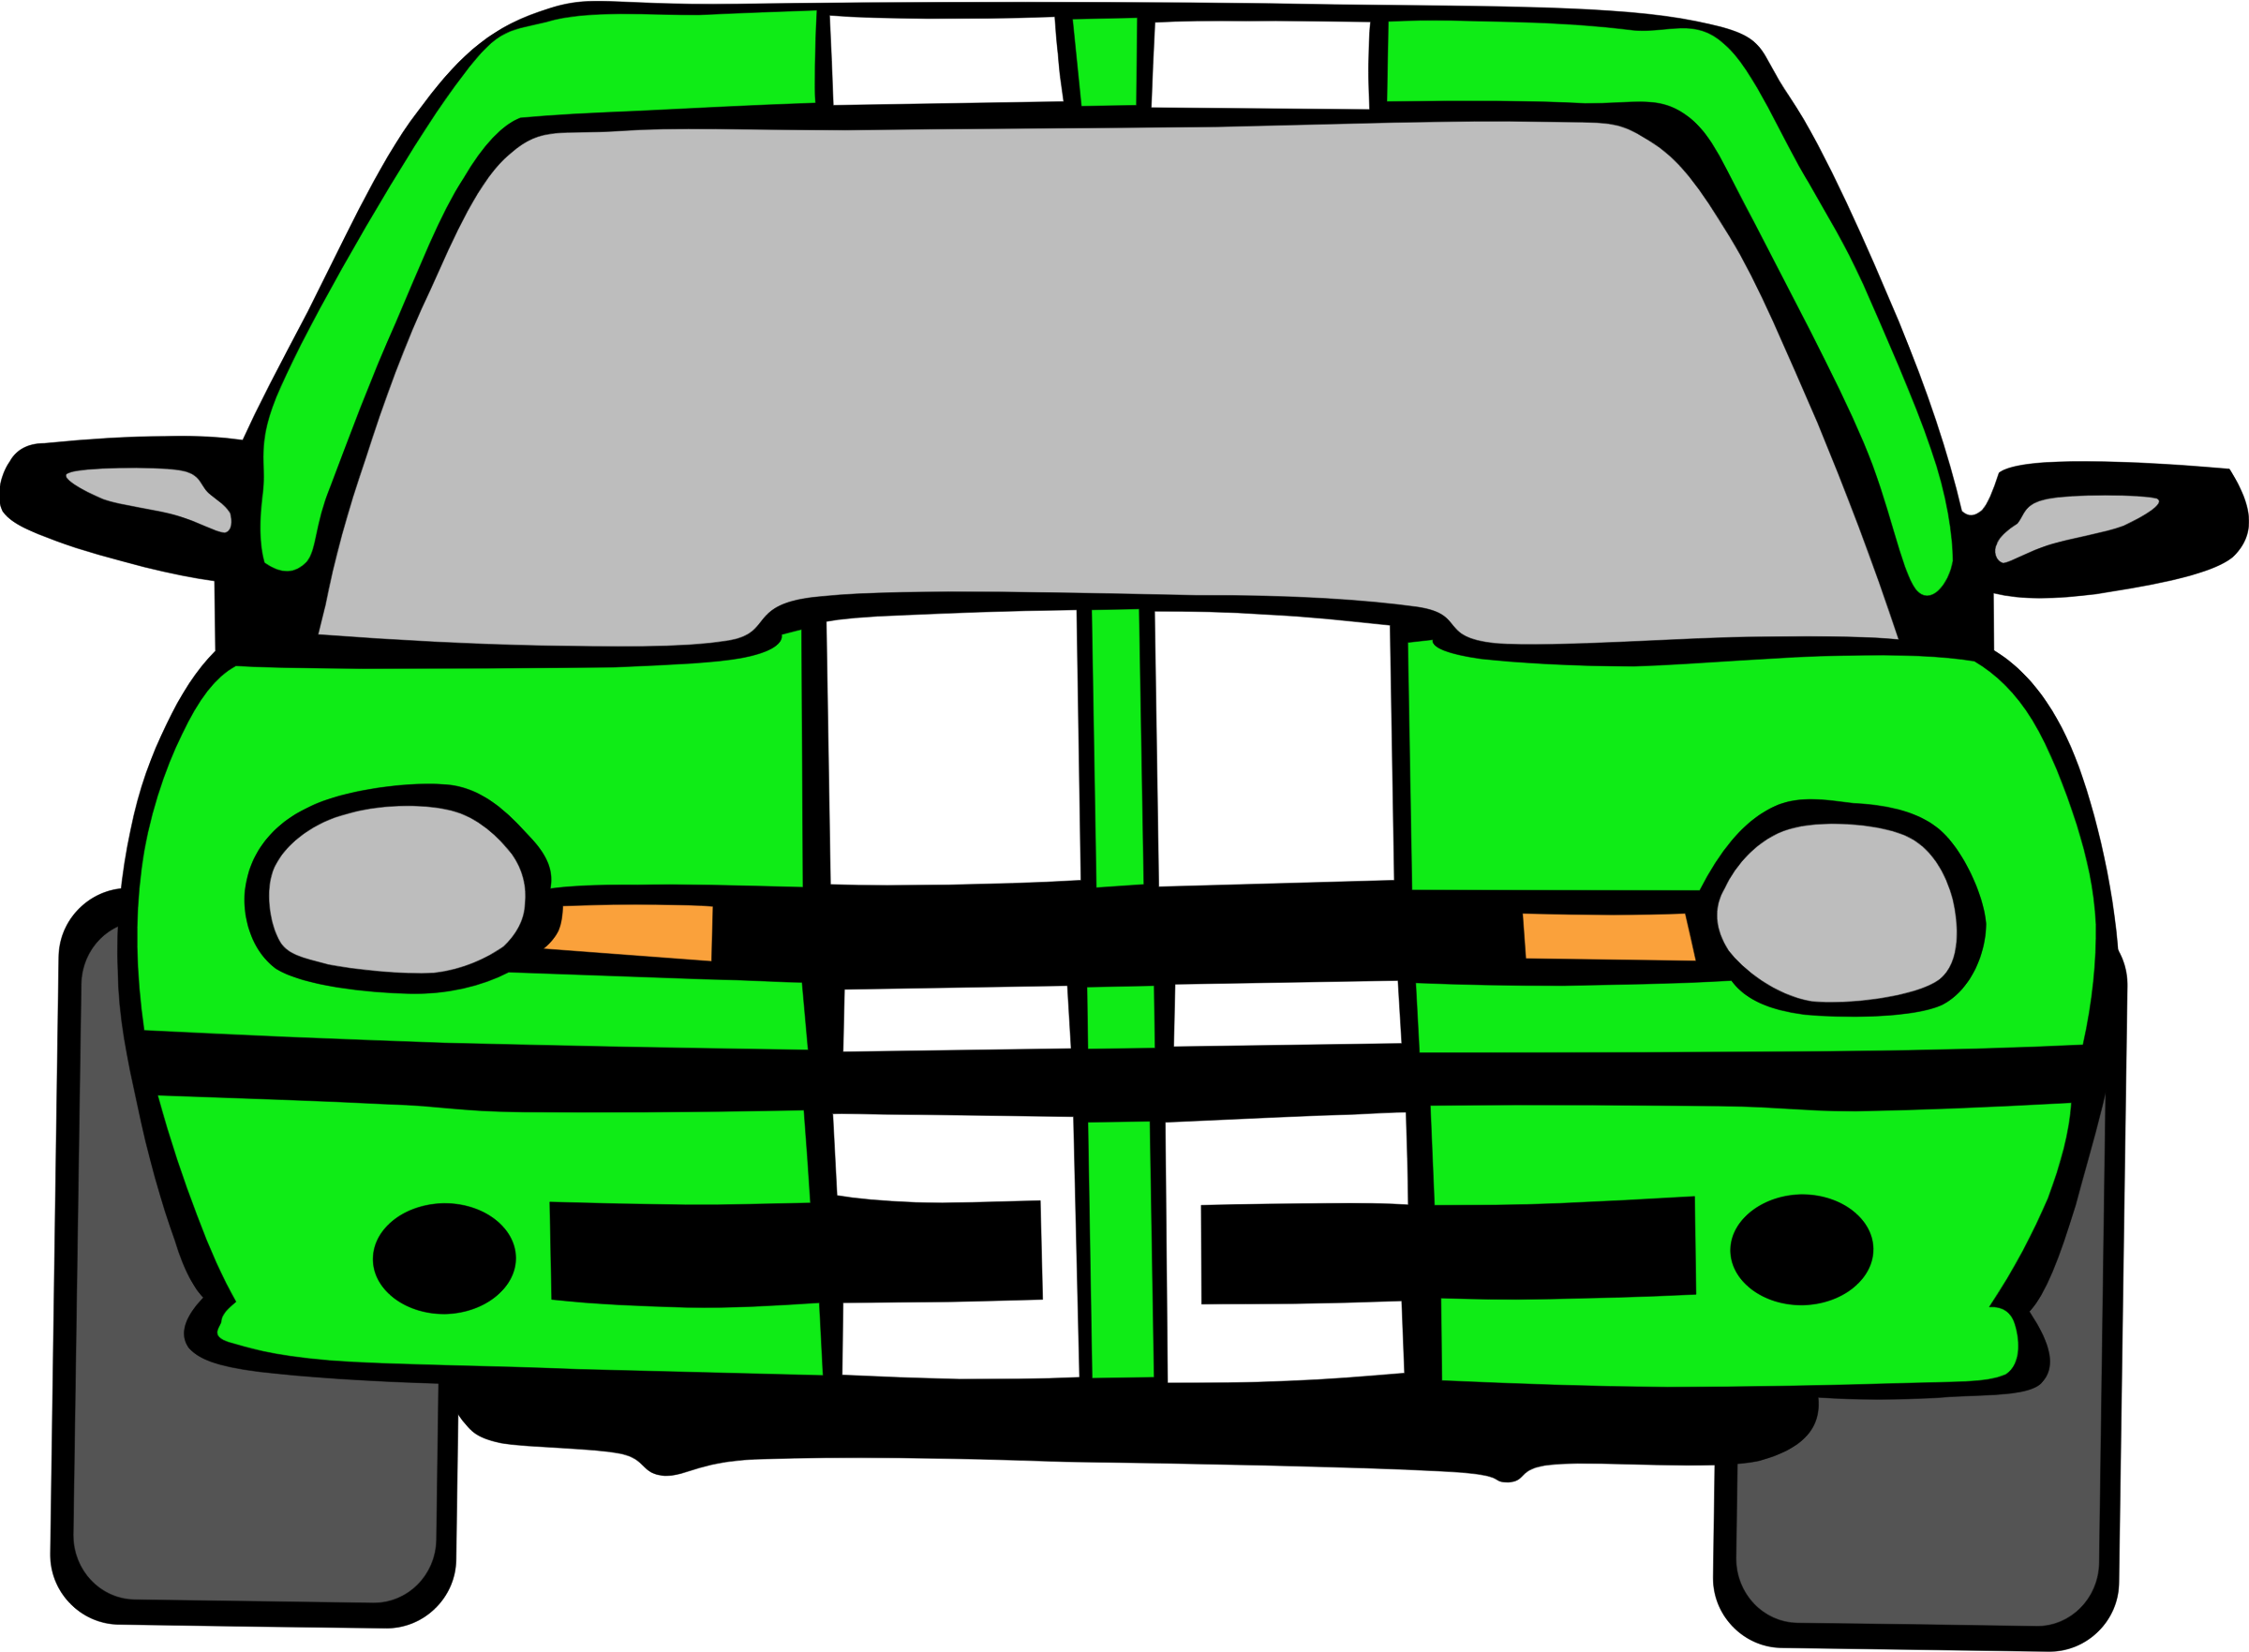 Car front clipart graphic freeuse library Clipart - Dodge Neon Car graphic freeuse library